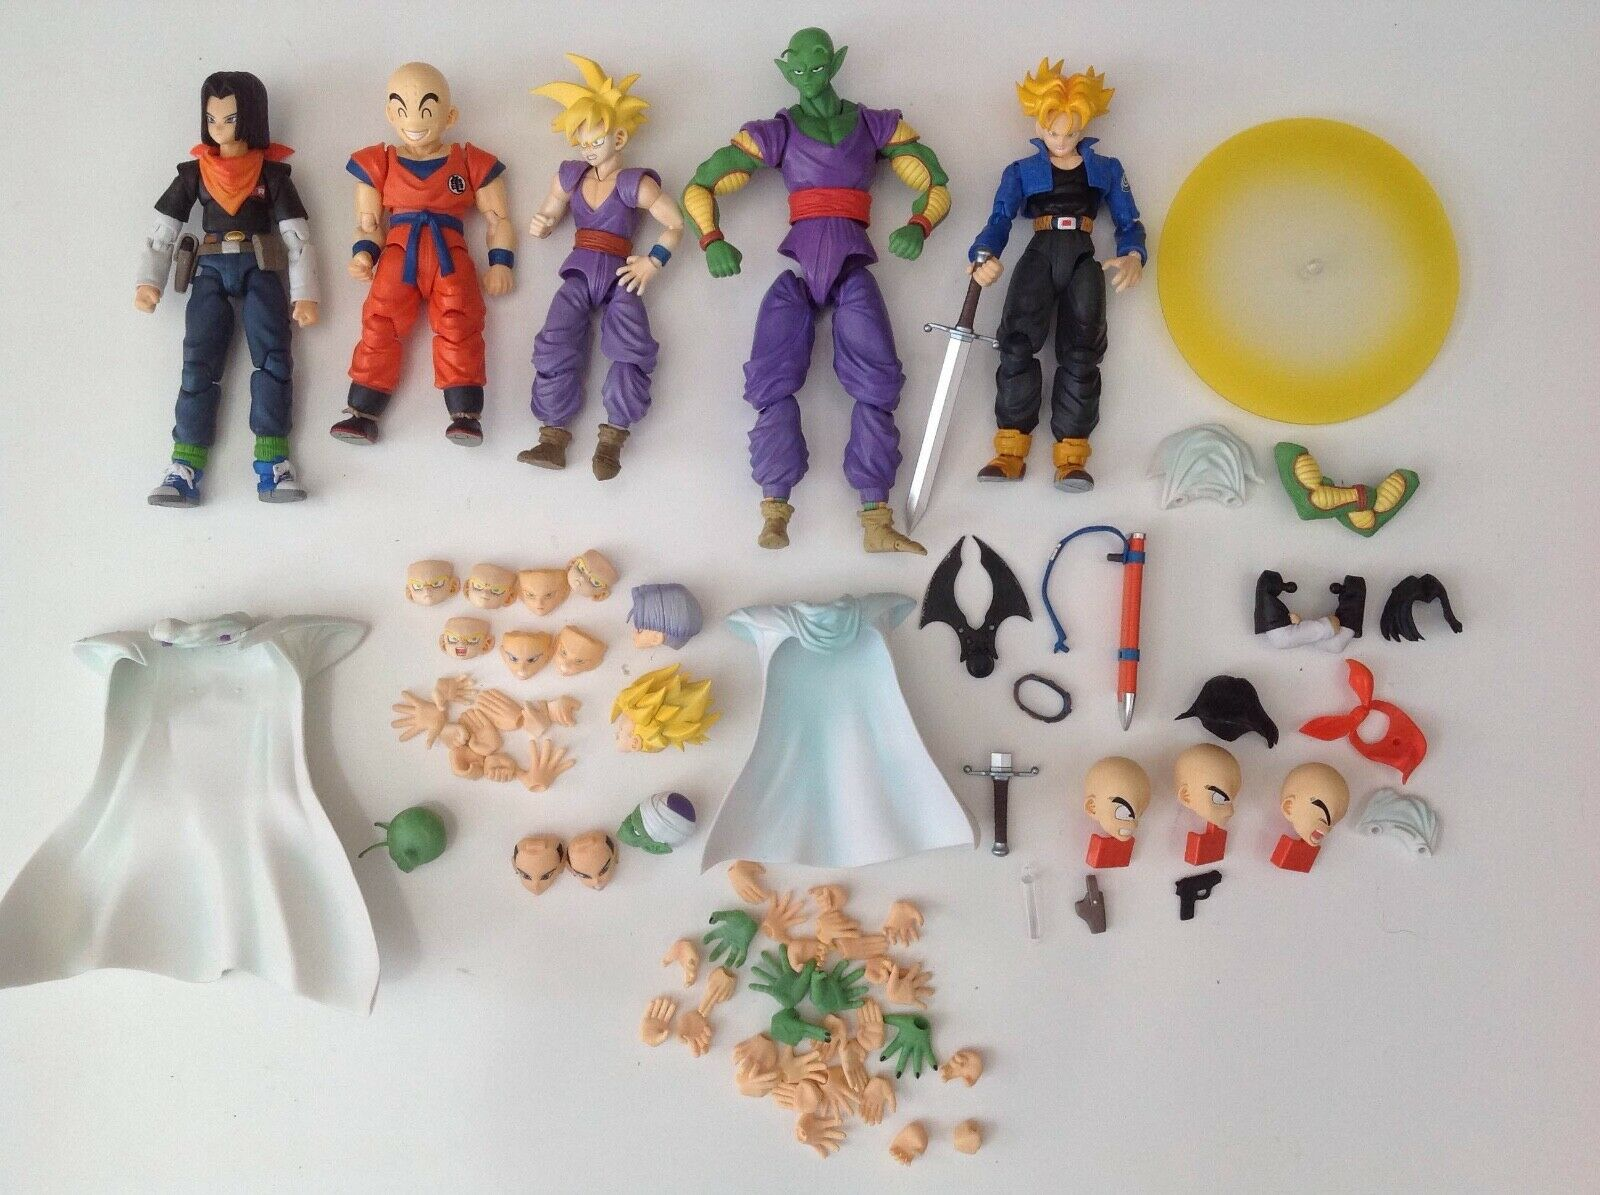 Dragon Ball Z Figuarts Action Figures Android 17, Piccolo, Krillin Klilyn, Gohan